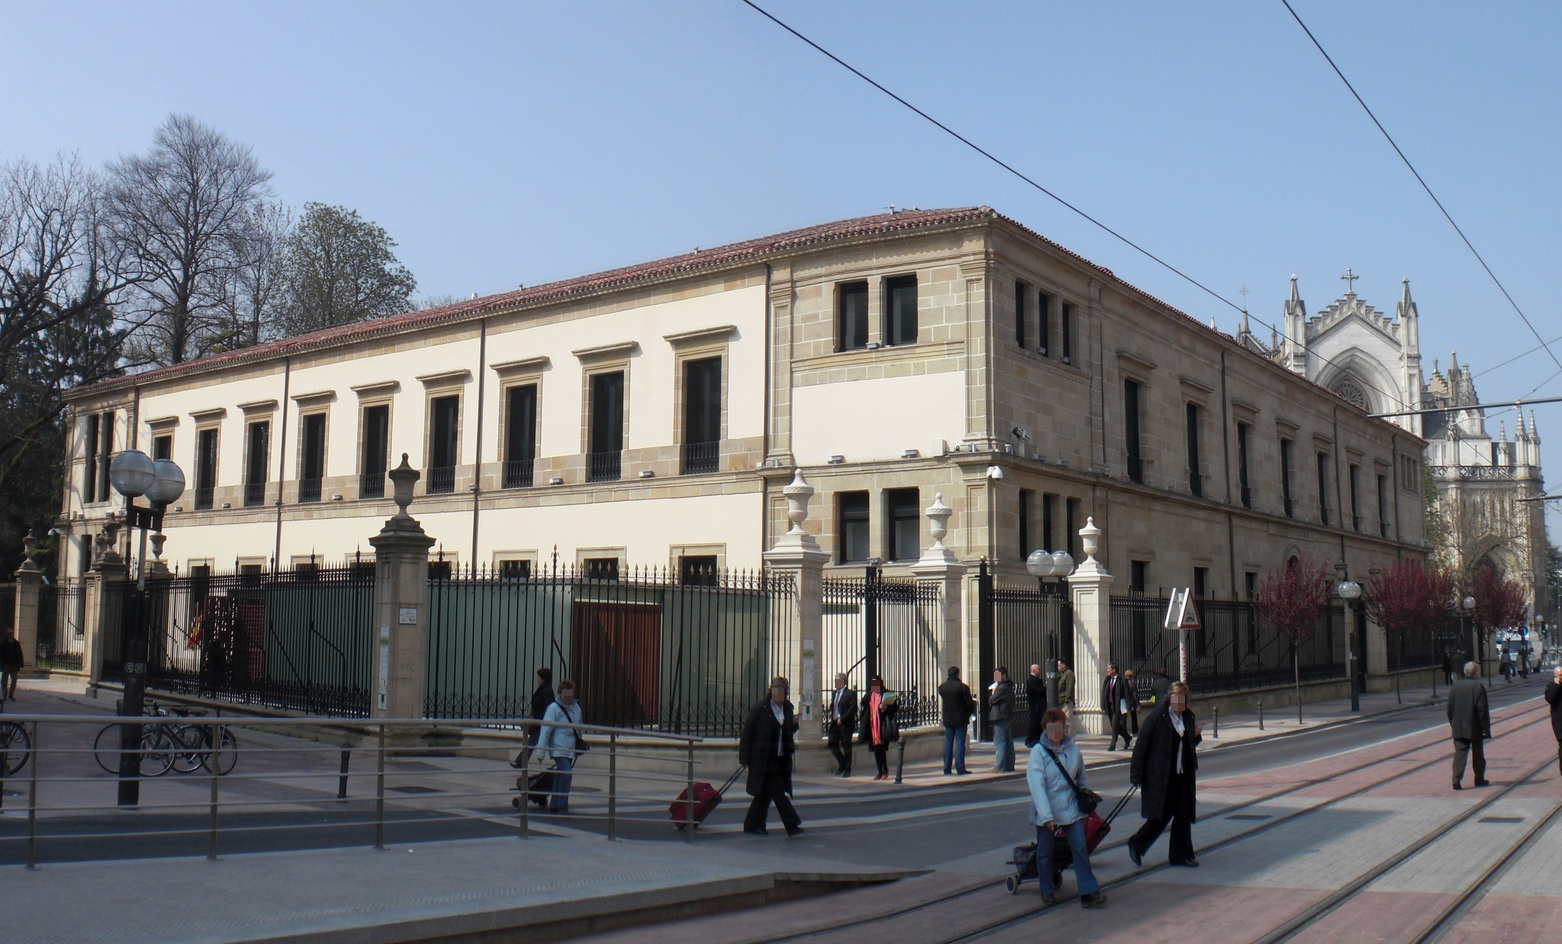 Edificio del Parlamento Vasco, antiguo Instituto Ramiro de Maeztu